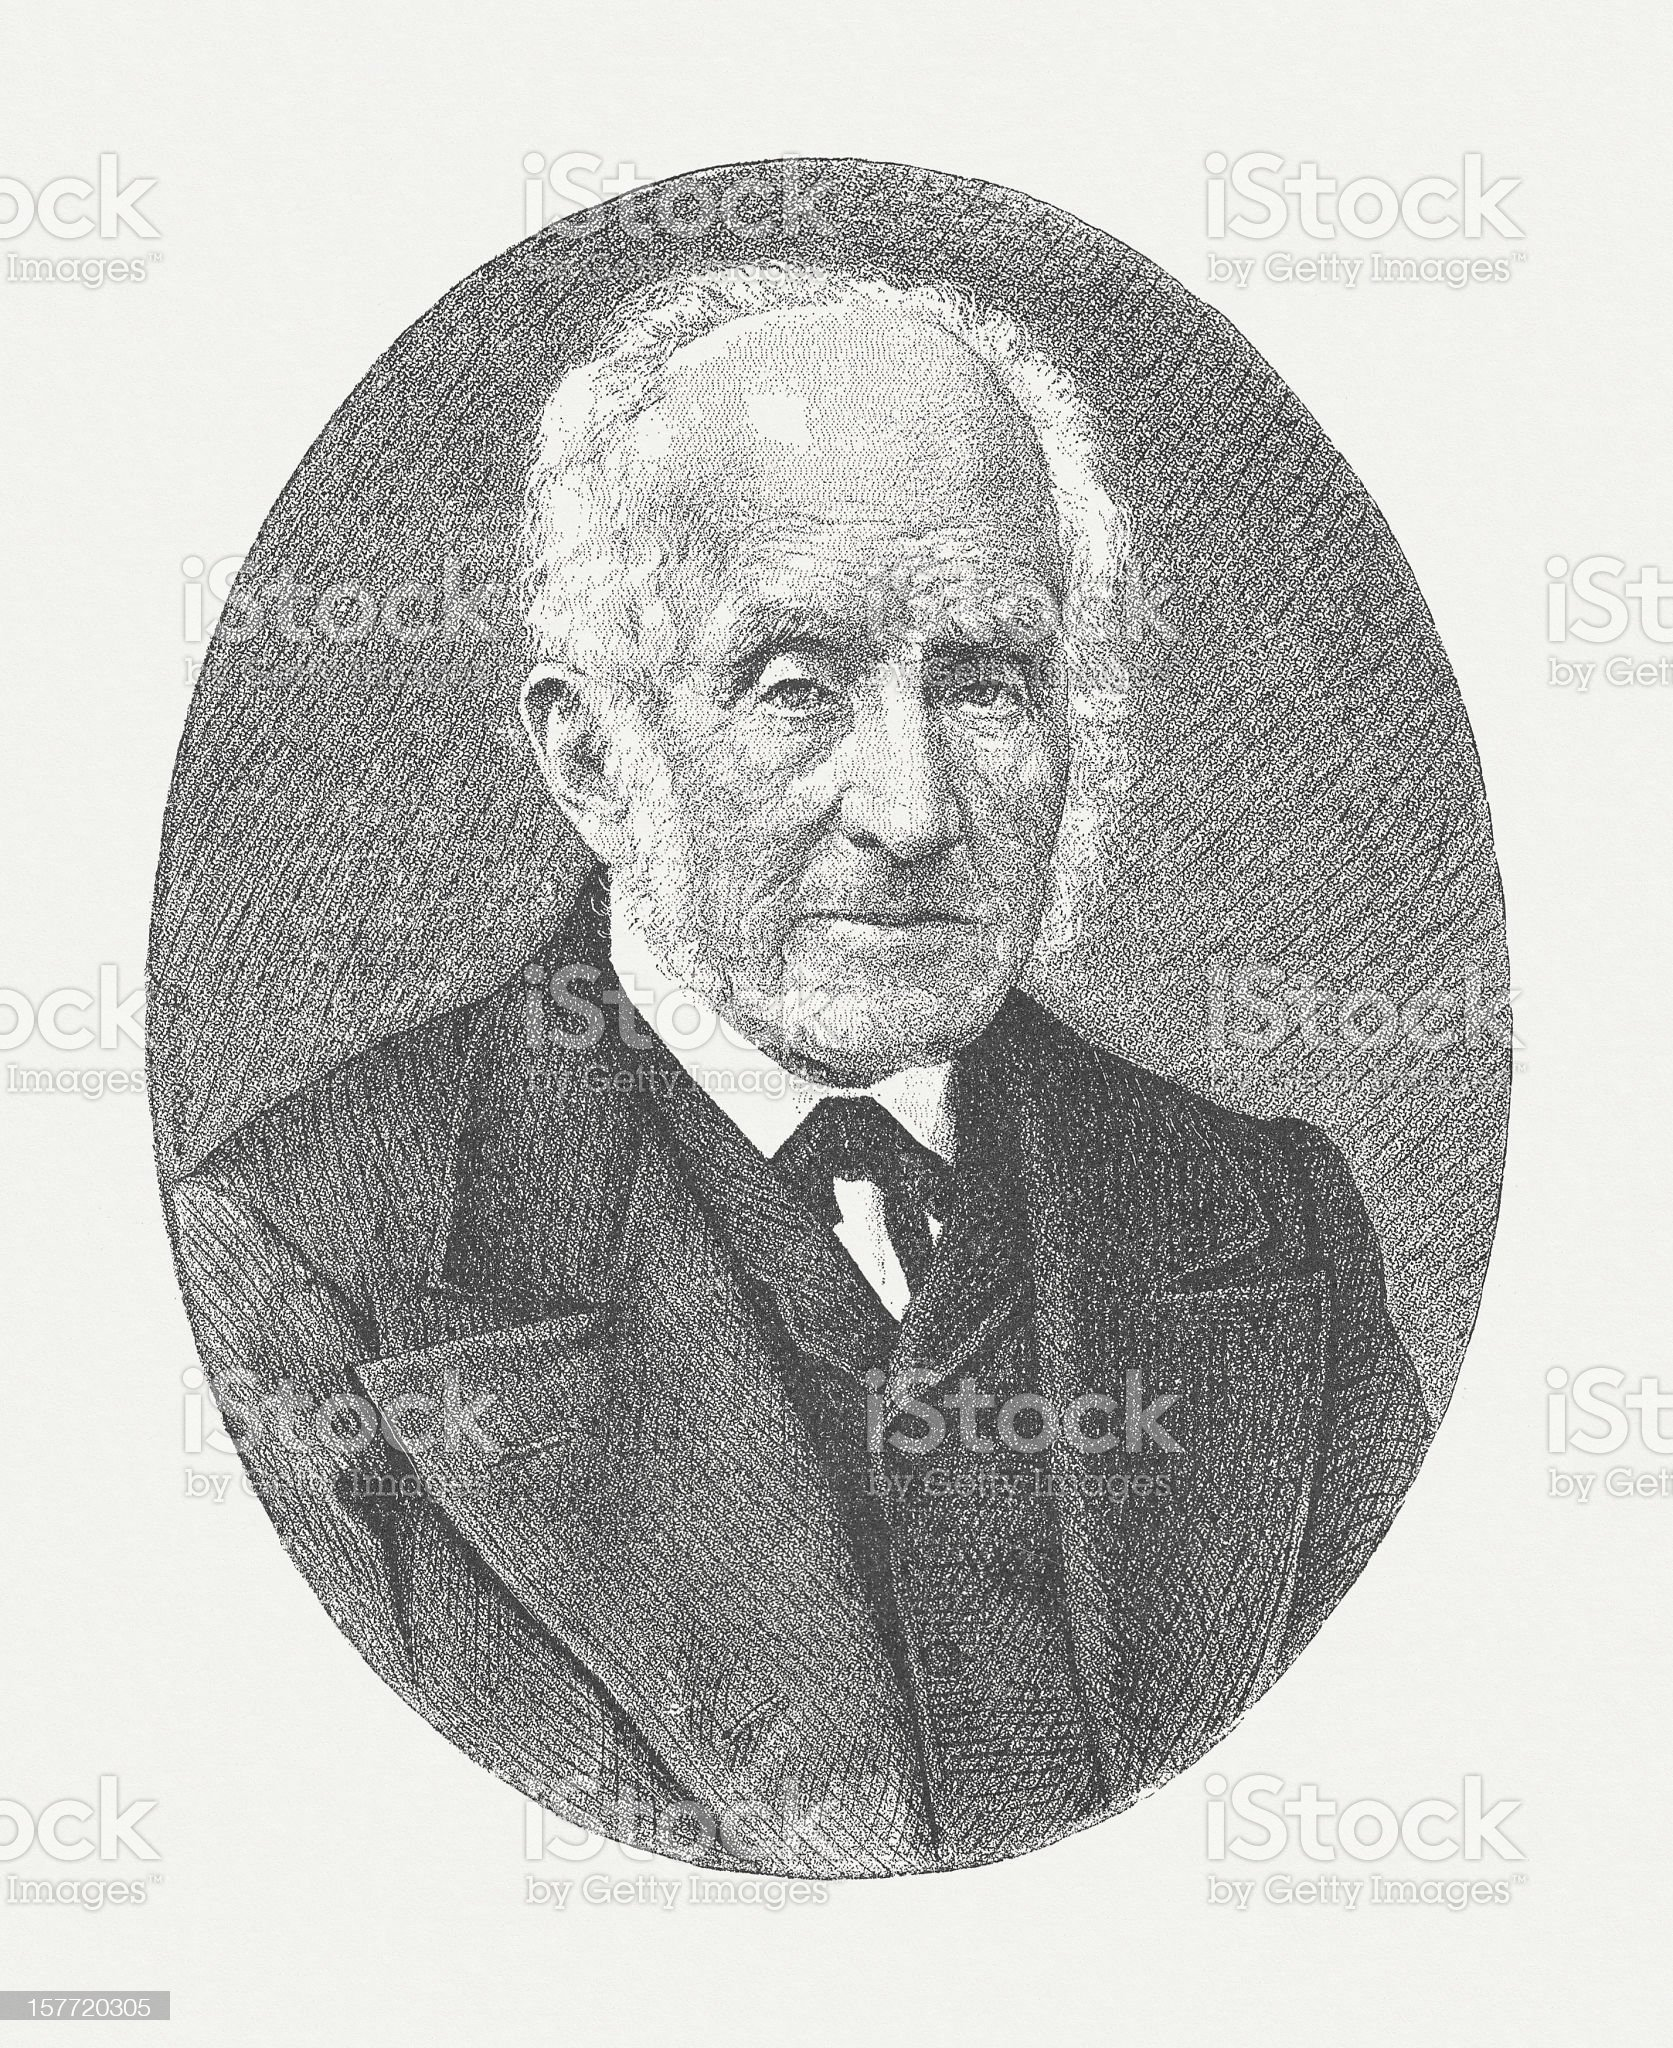 Alessandro Manzoni (1785-1873), wood engraving, published in 1882 royalty-free stock vector art